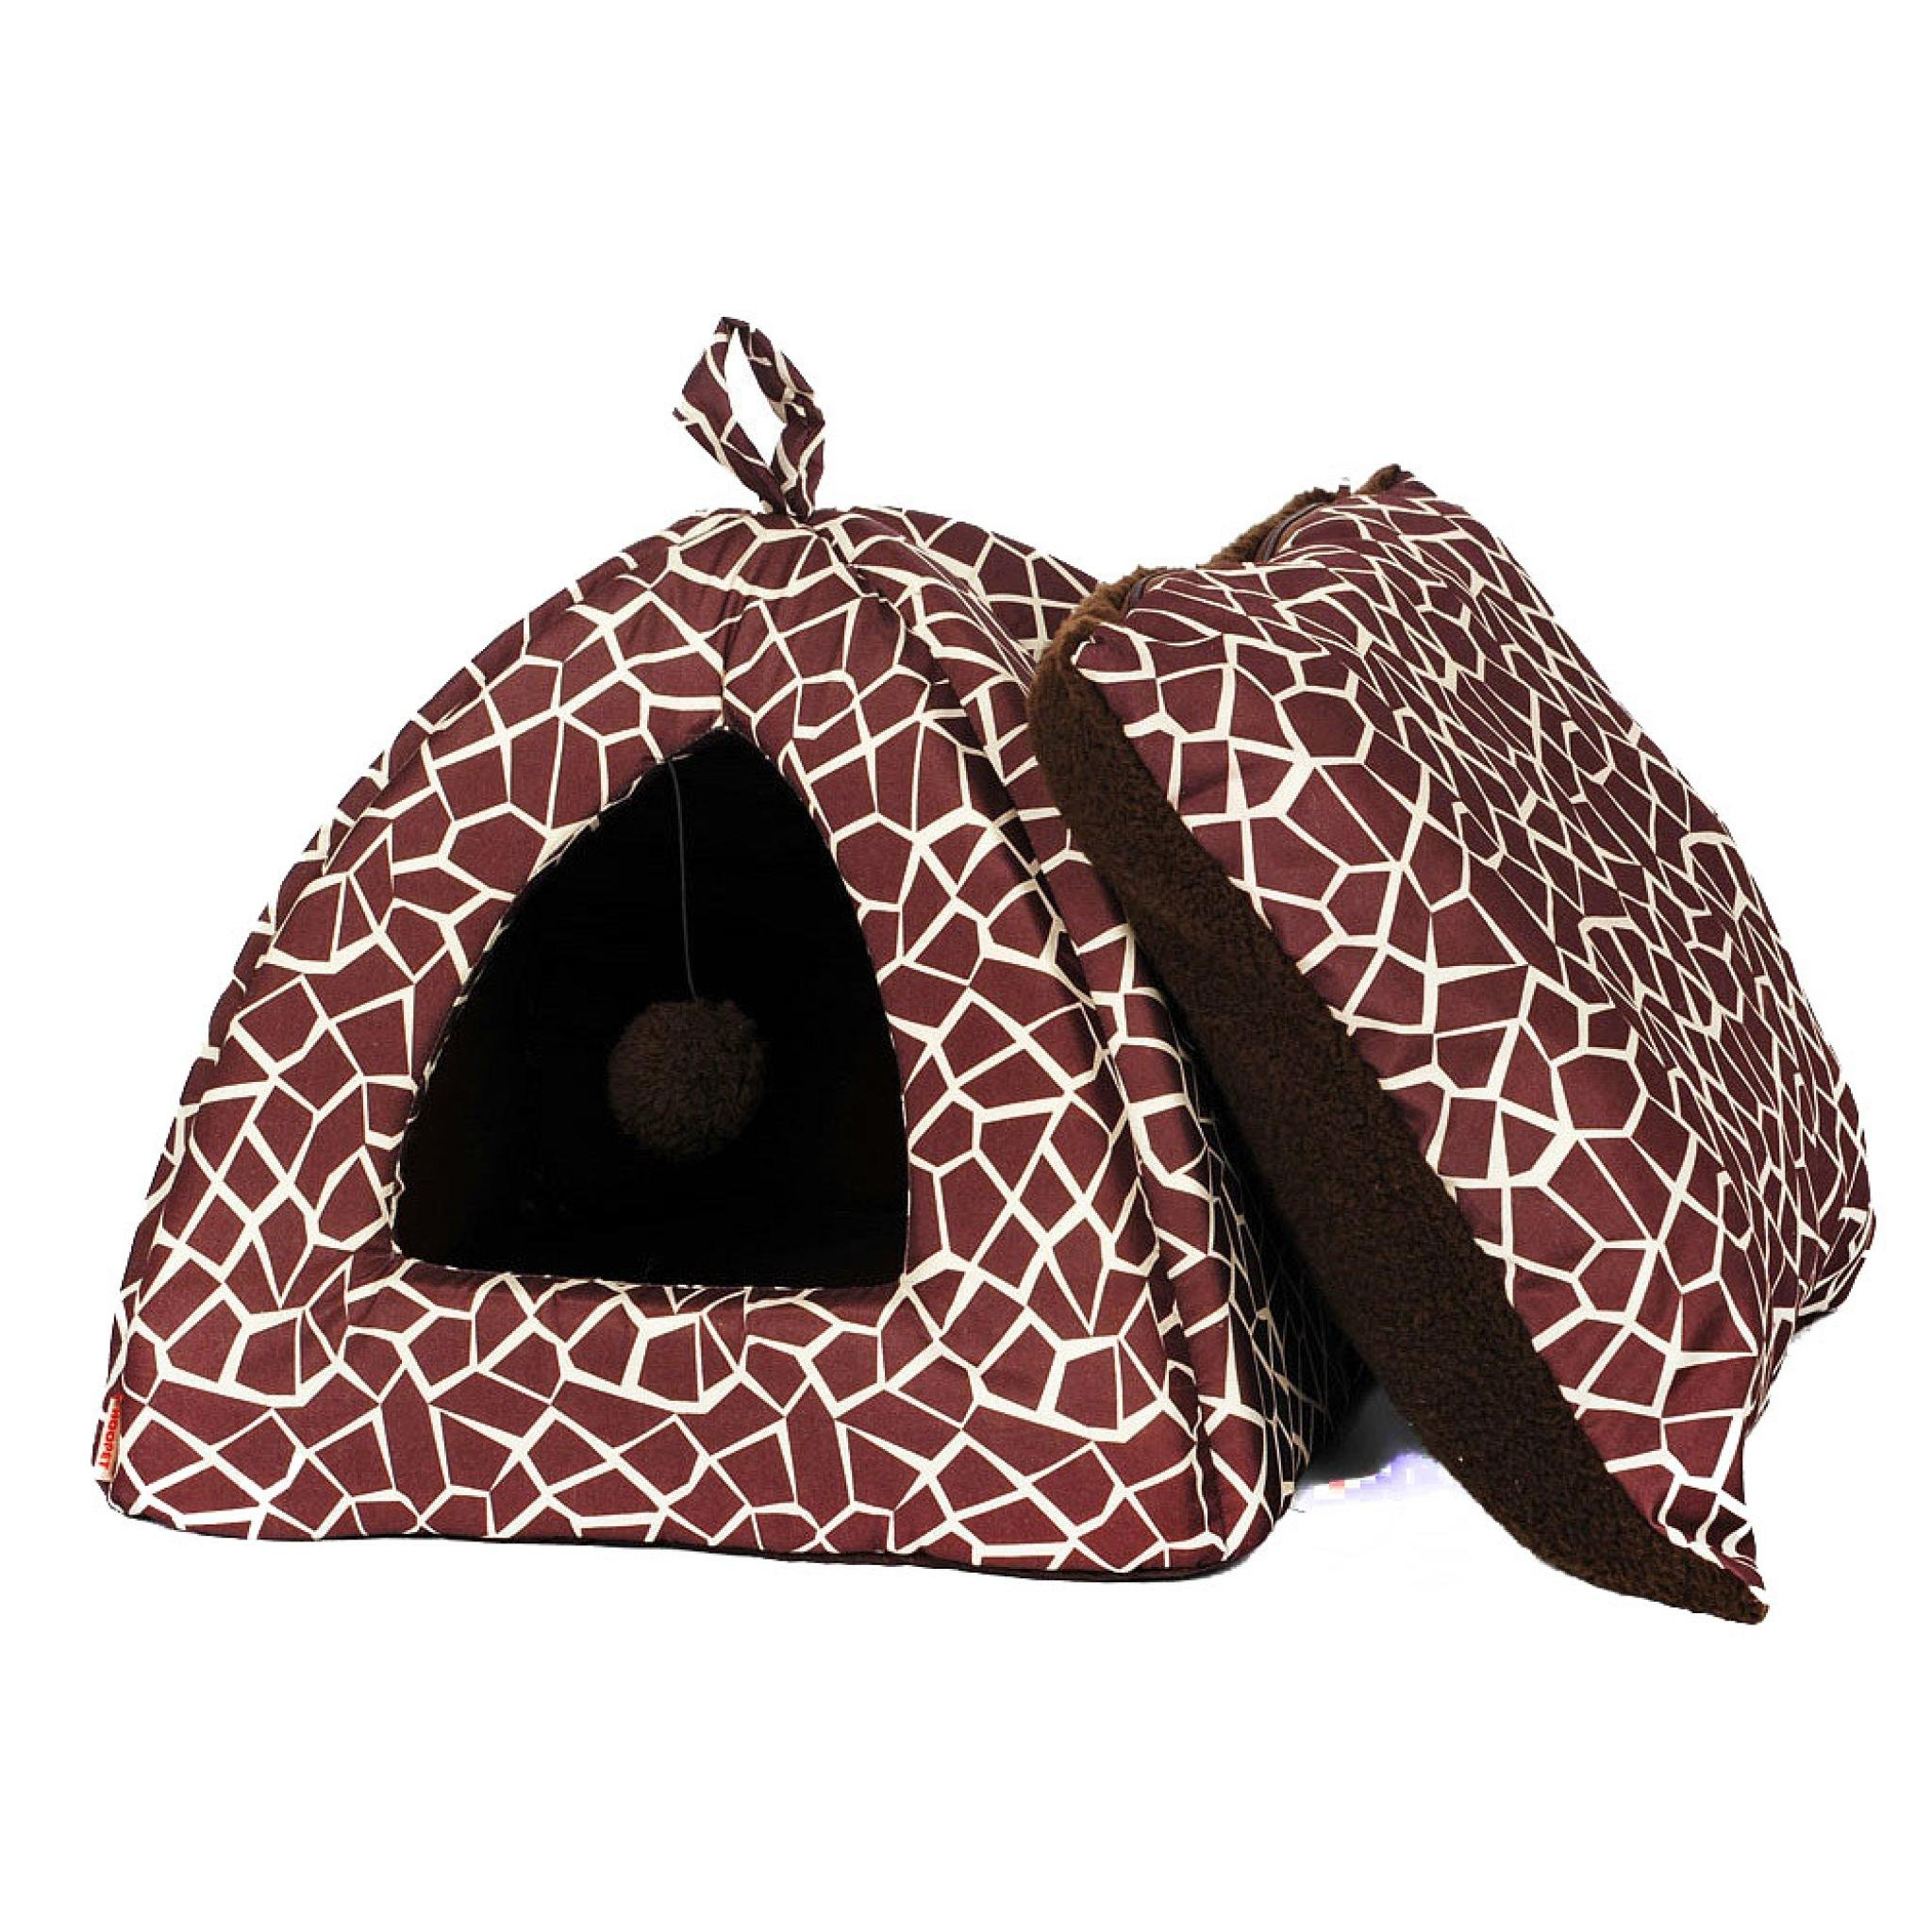 Tent Shape Pet Dog Cat House Bed by PrettyPet! Indoor Washable House Lounger with Waterproof Removable Cushion and Pet Toy for Small and Medium Pets. Let your dog relax with a real comfort!